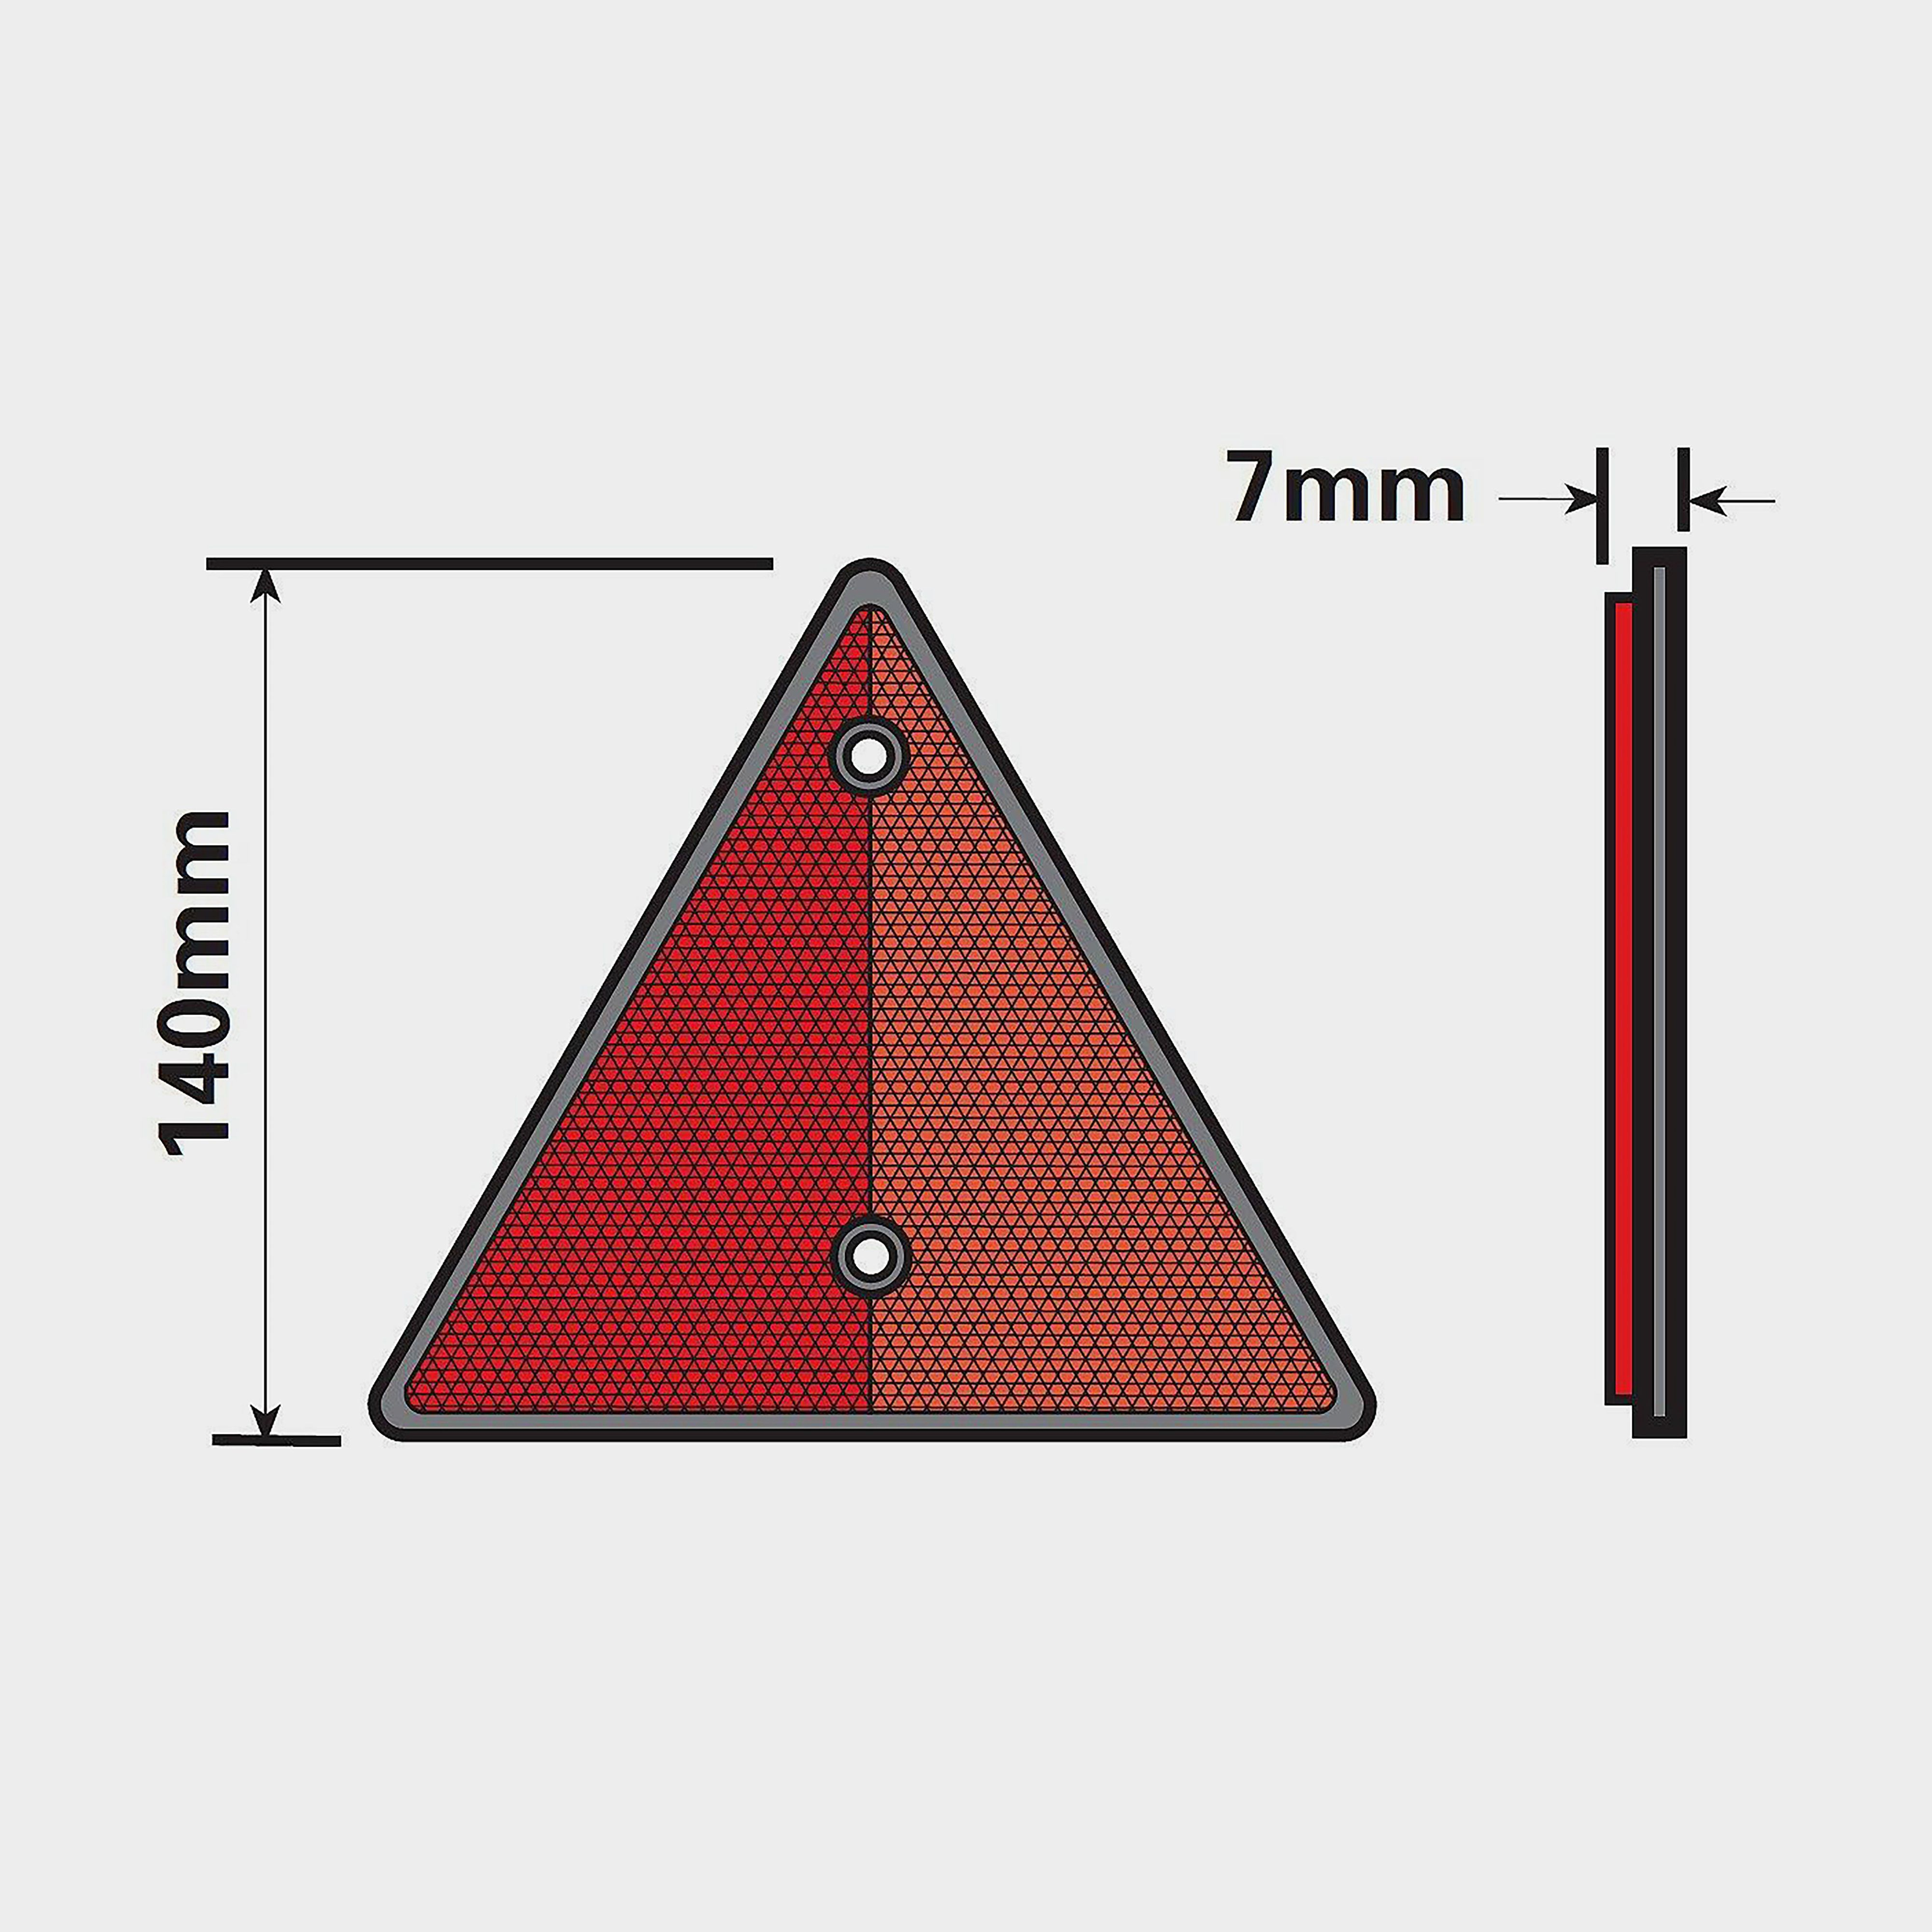 MAYPOLE Reflective Trailer Triangle 2 Pack